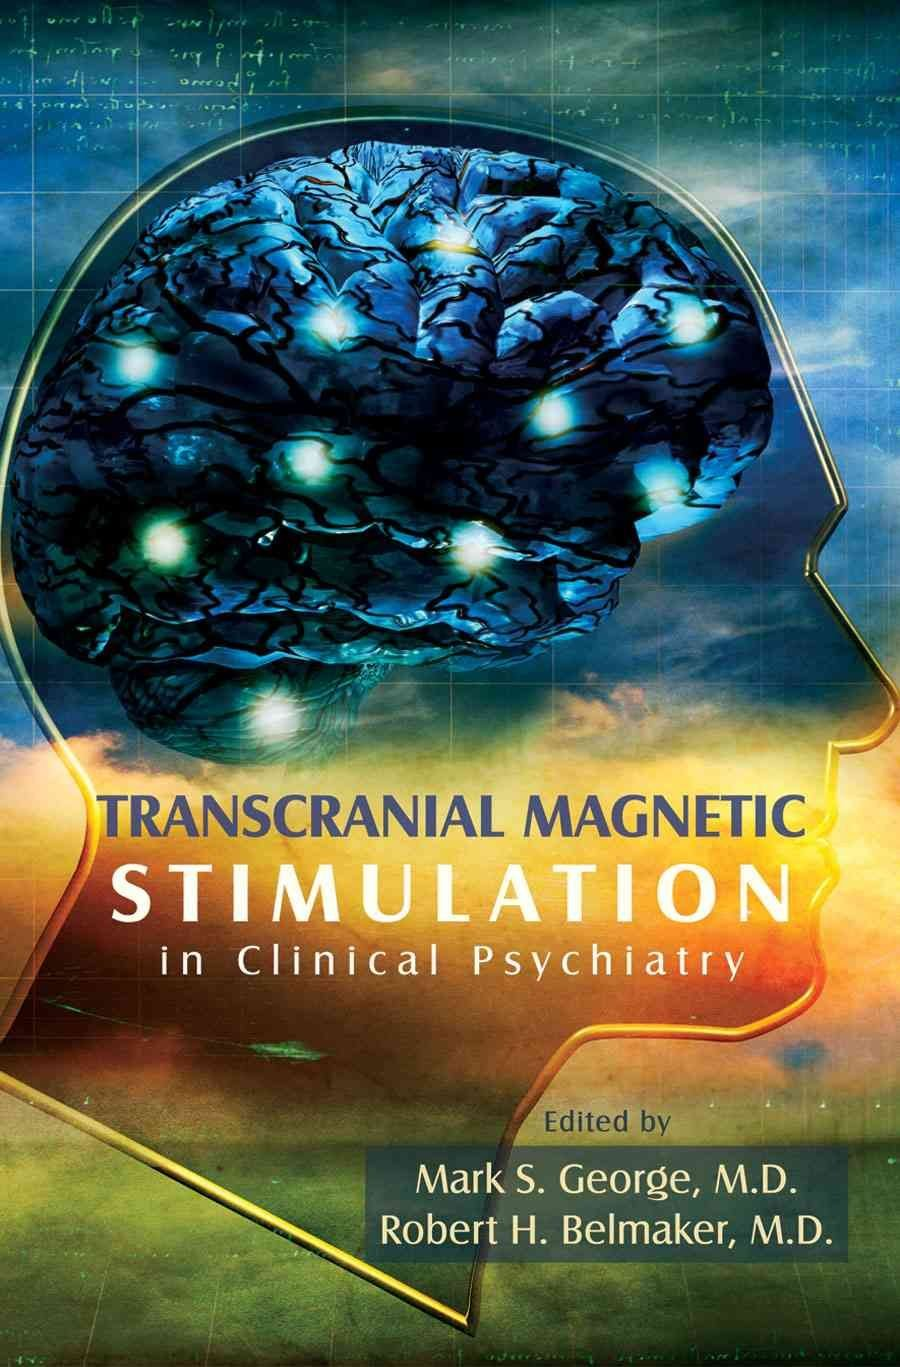 Transcranial Magnetic Stimulation in Clinical Psychiatry - Mark S. George